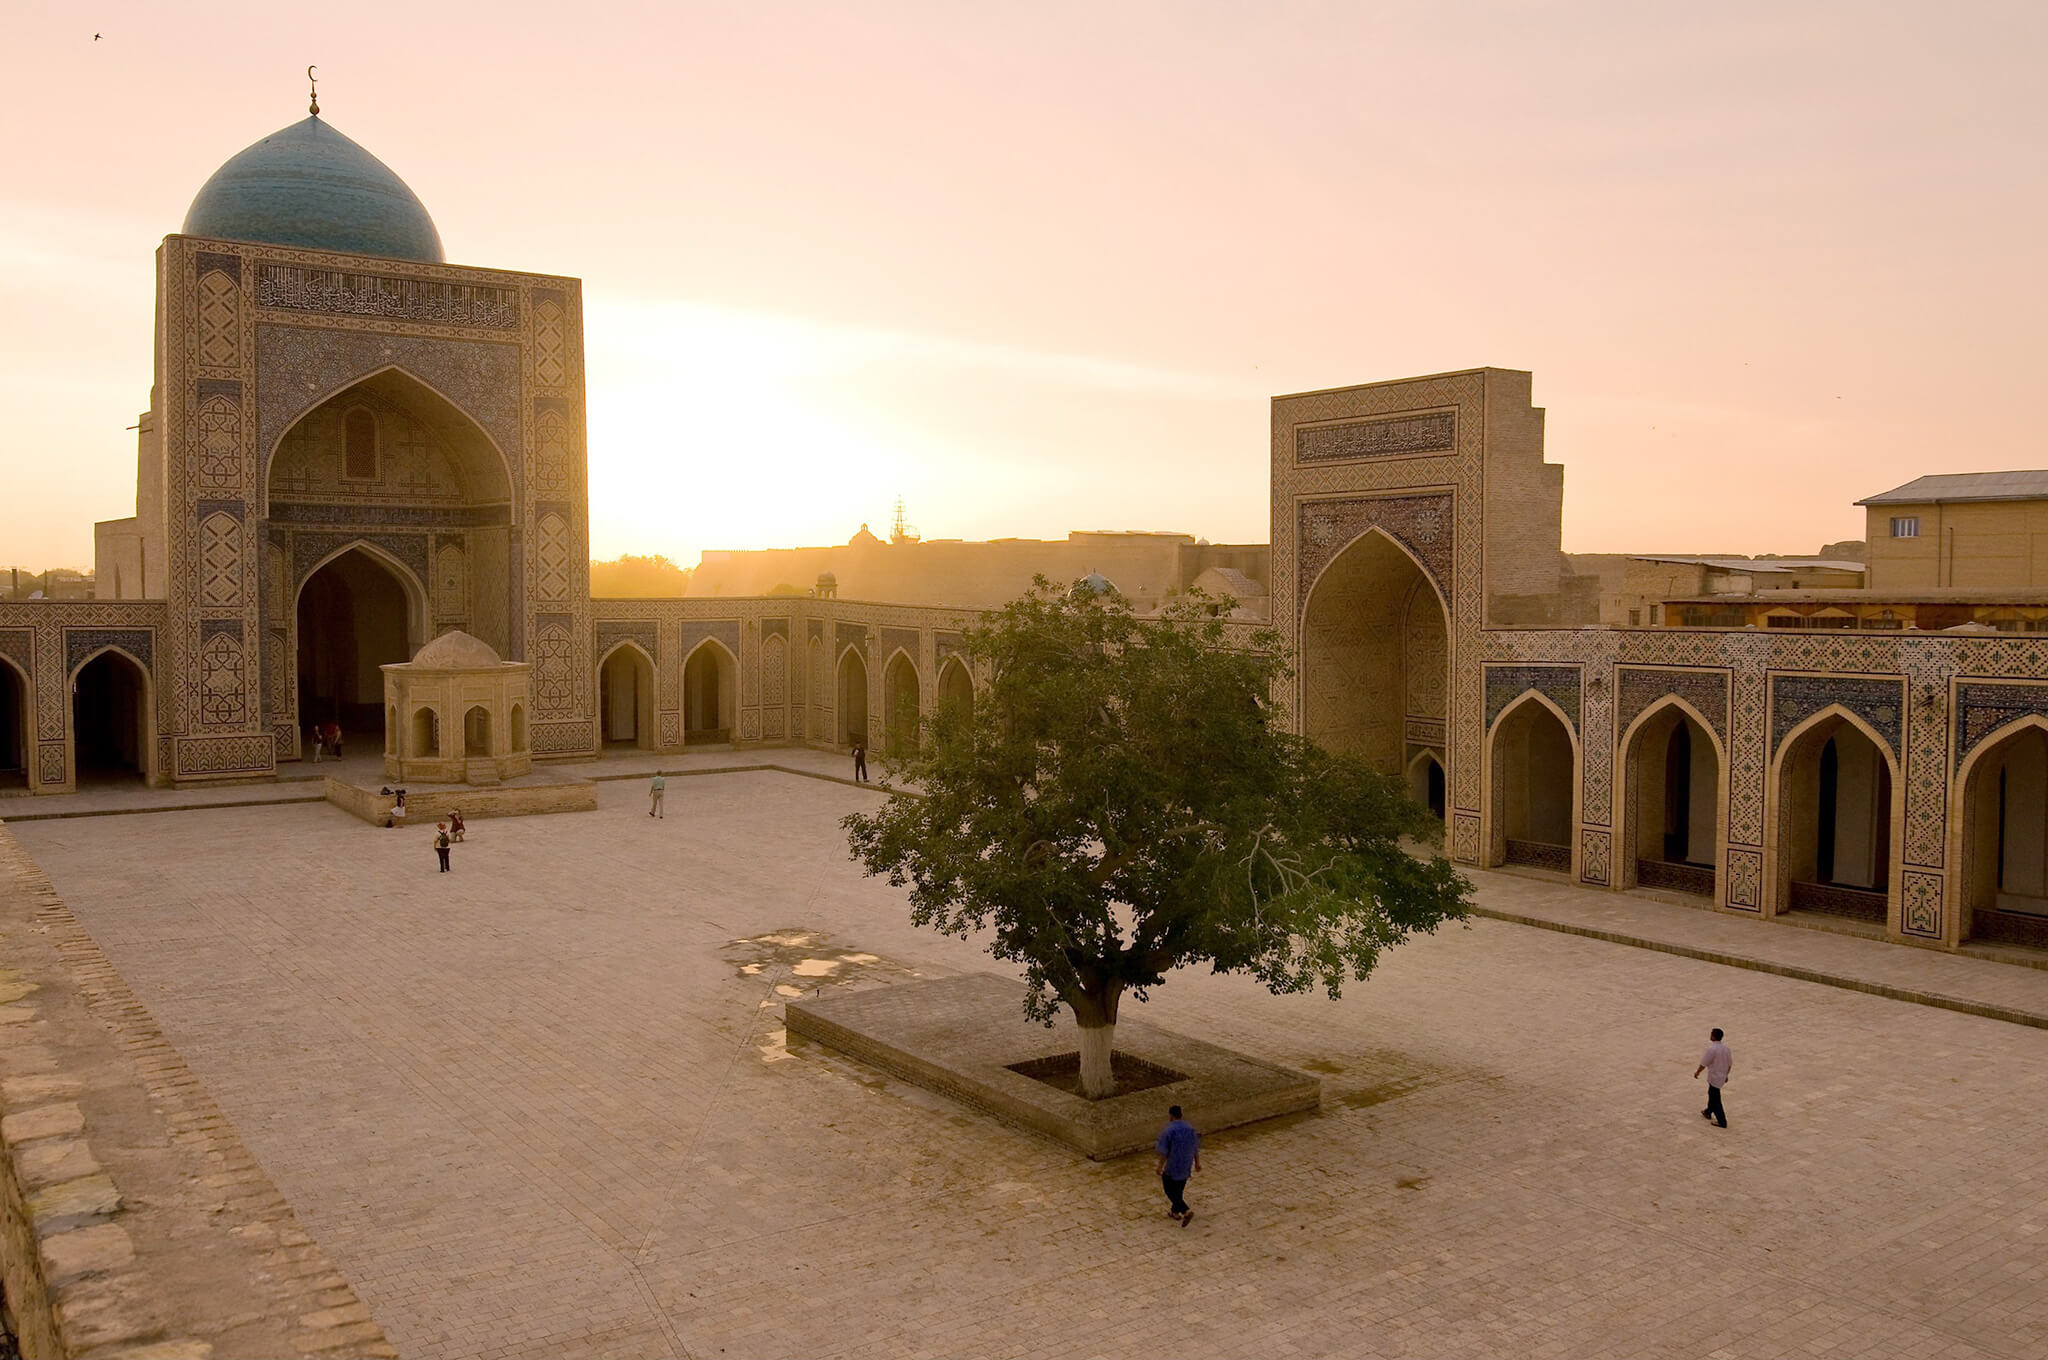 vacanze low cost - uzbekistan - Top 5 mete per vacanze low cost